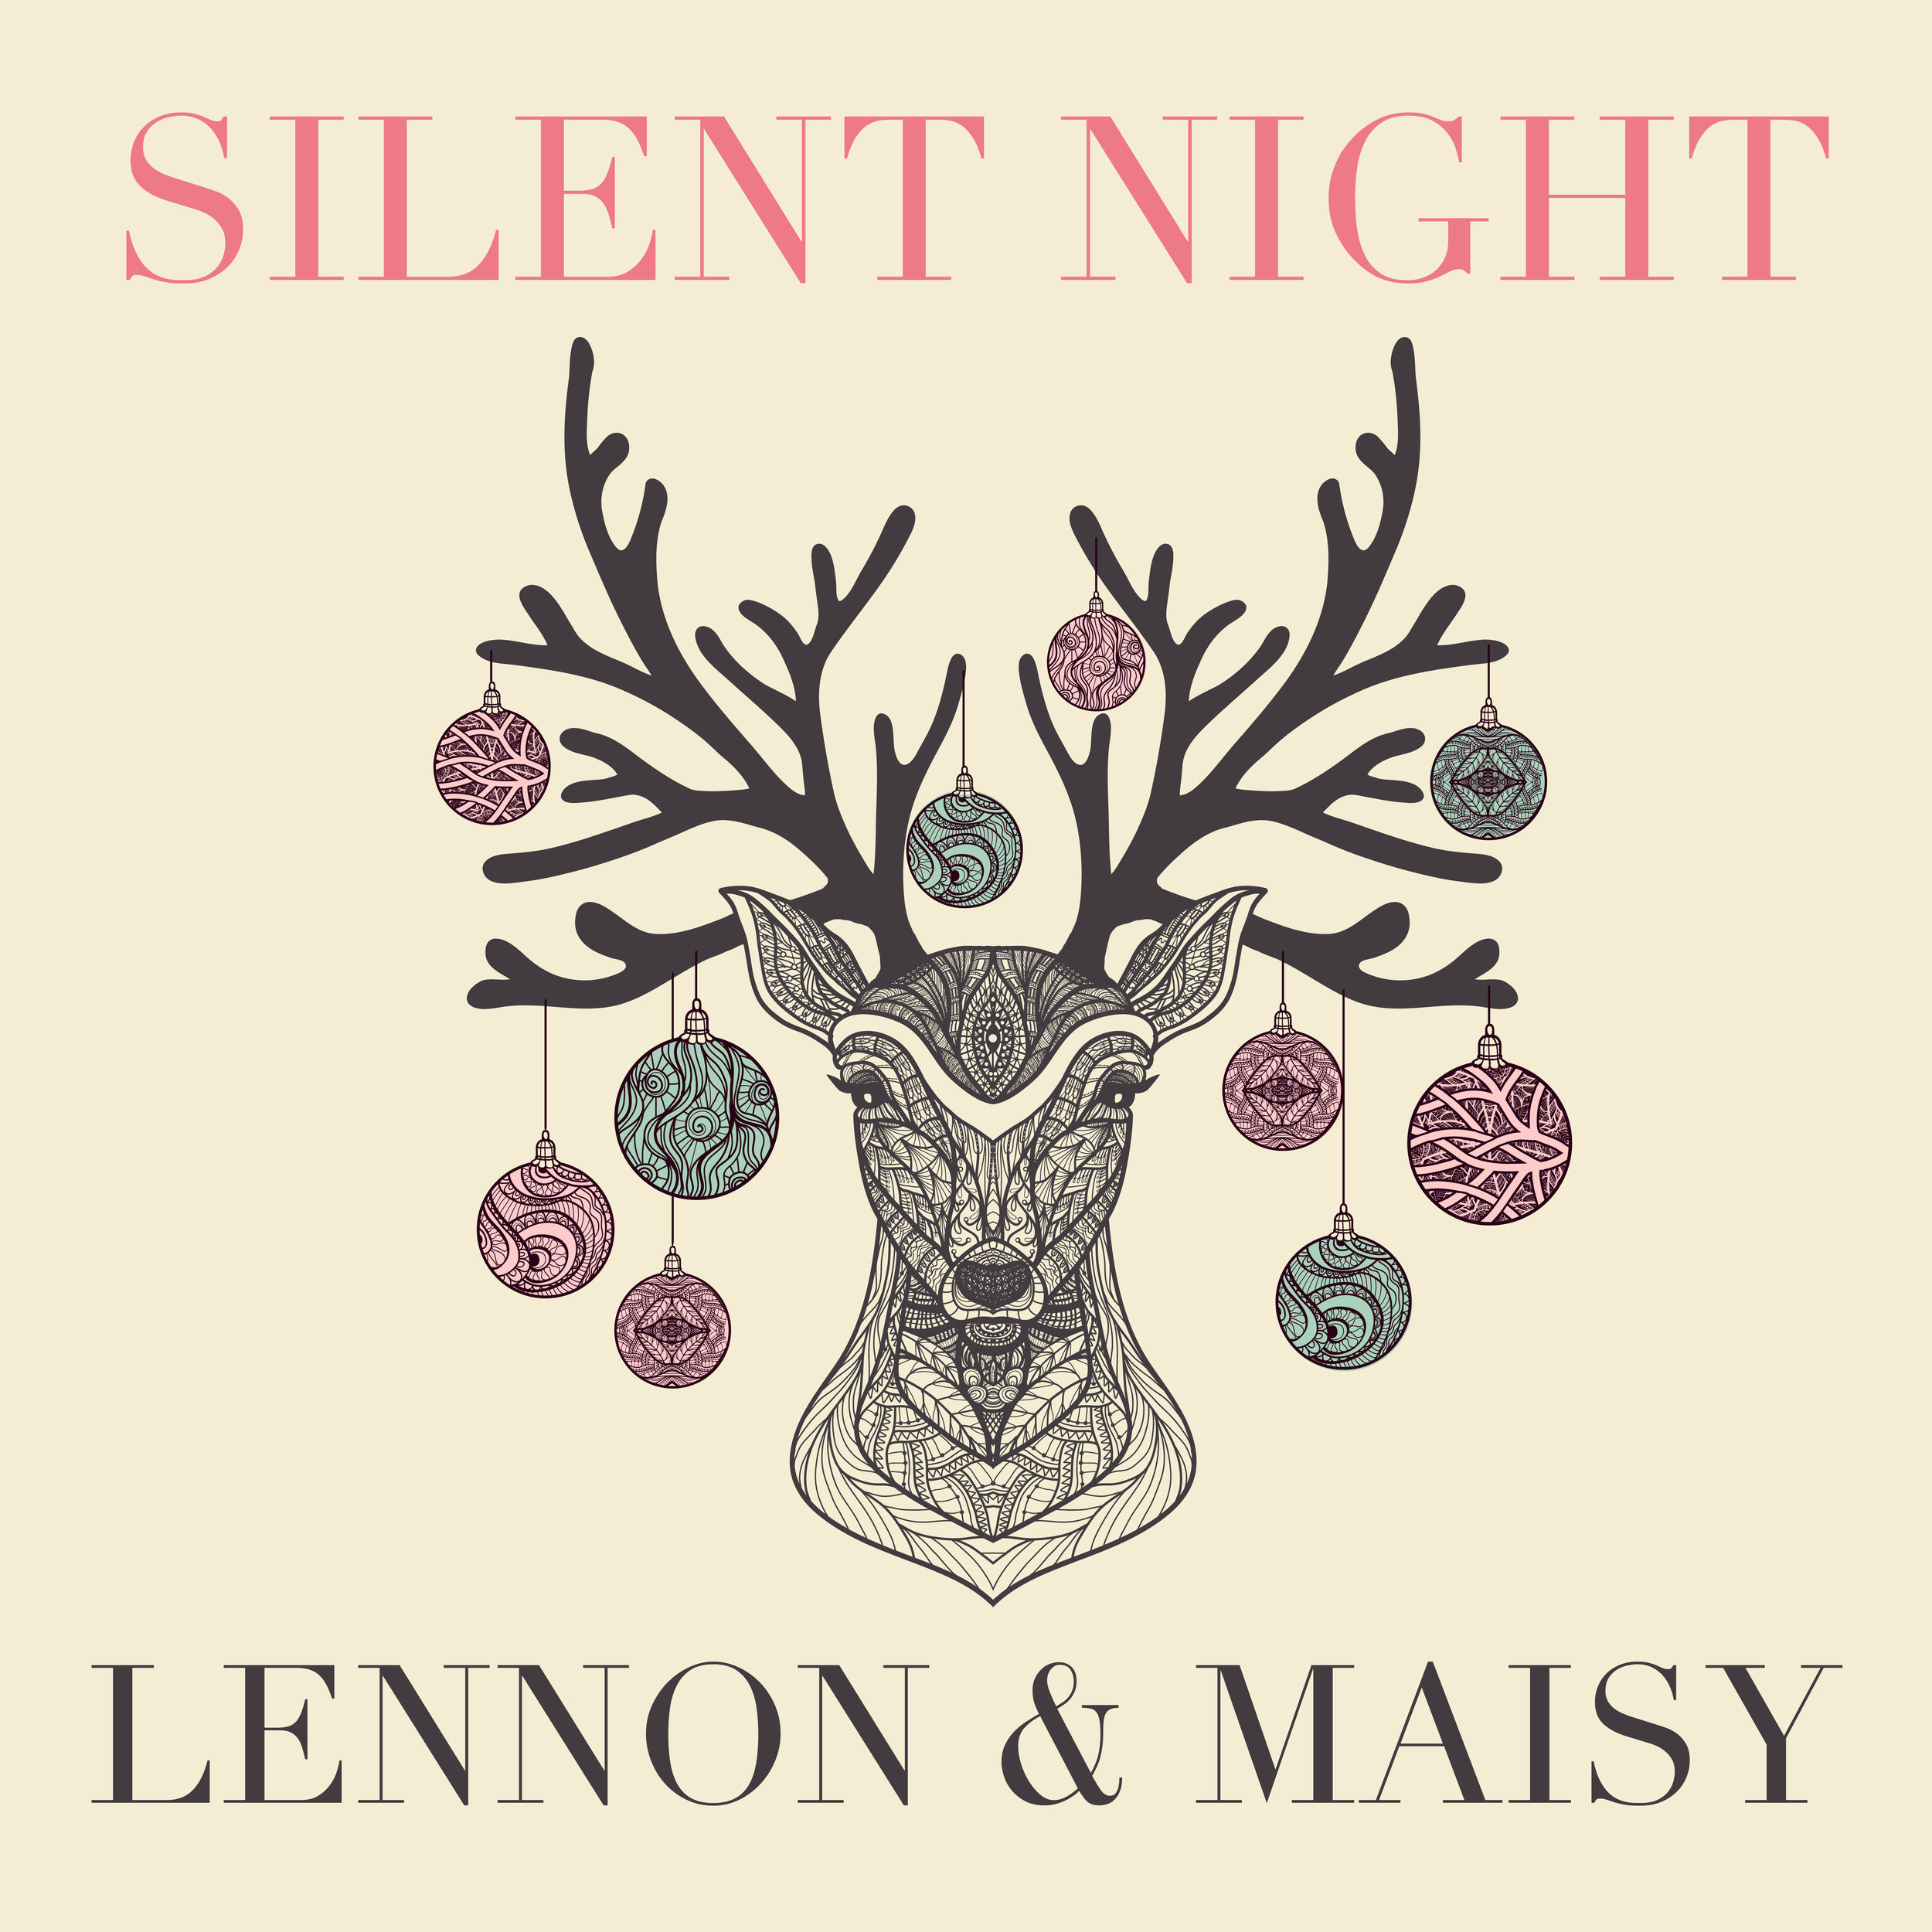 Lennon + Maisy Silent Night.jpg